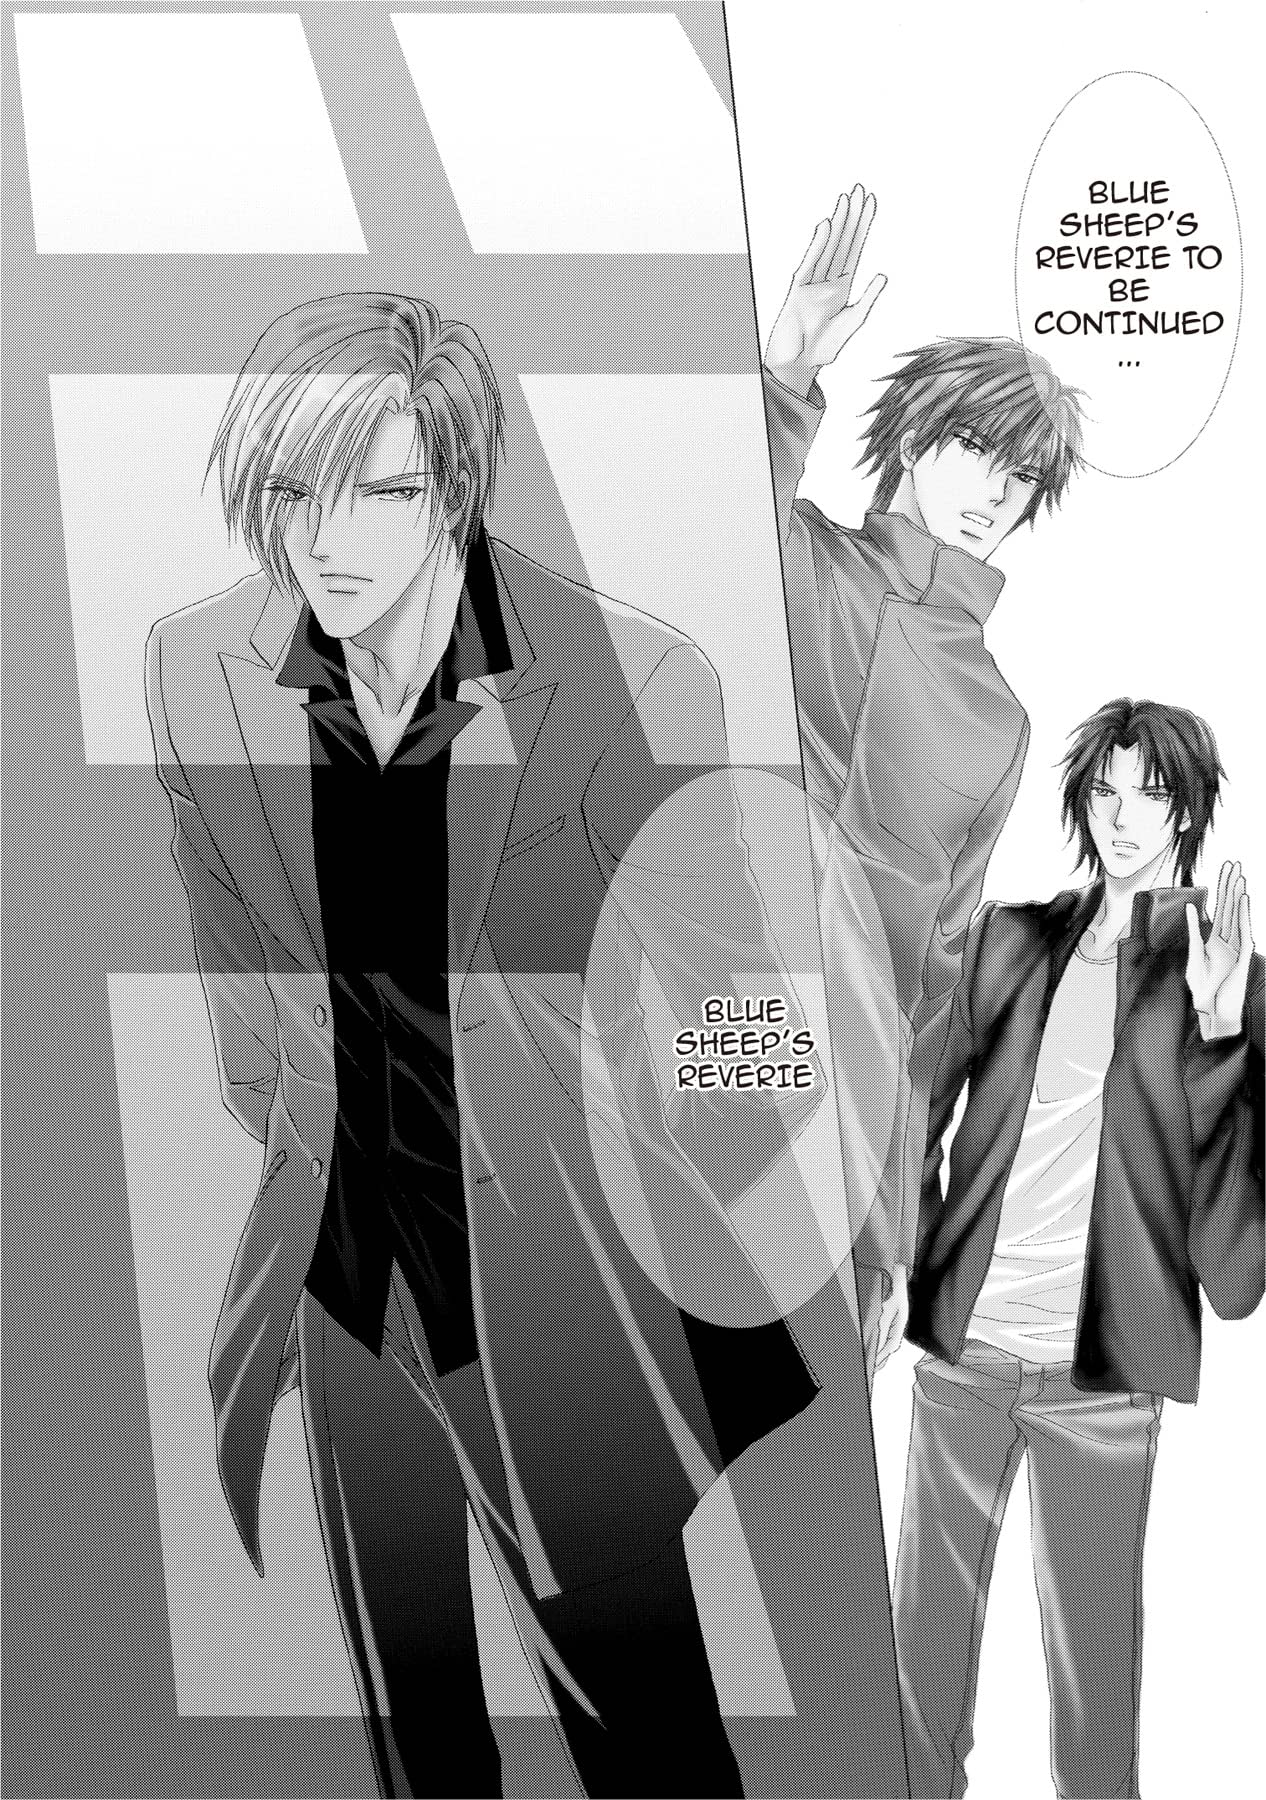 BLUE SHEEP'S REVERIE (Yaoi Manga) #14